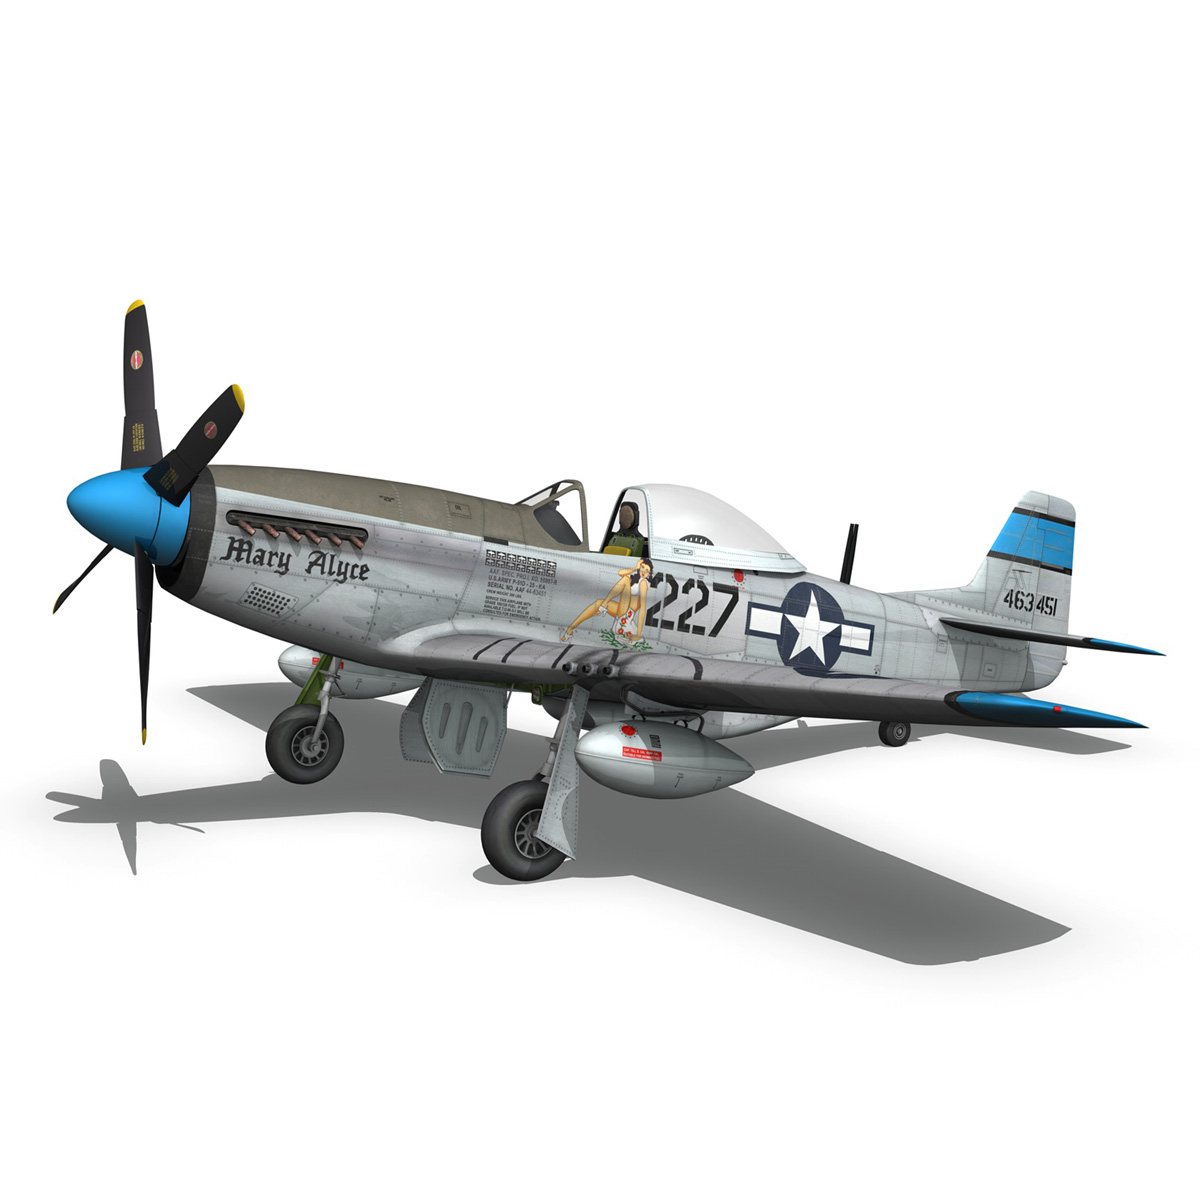 north american p-51d – mustang – mary alyce 3d model 3ds fbx c4d lwo obj 267575